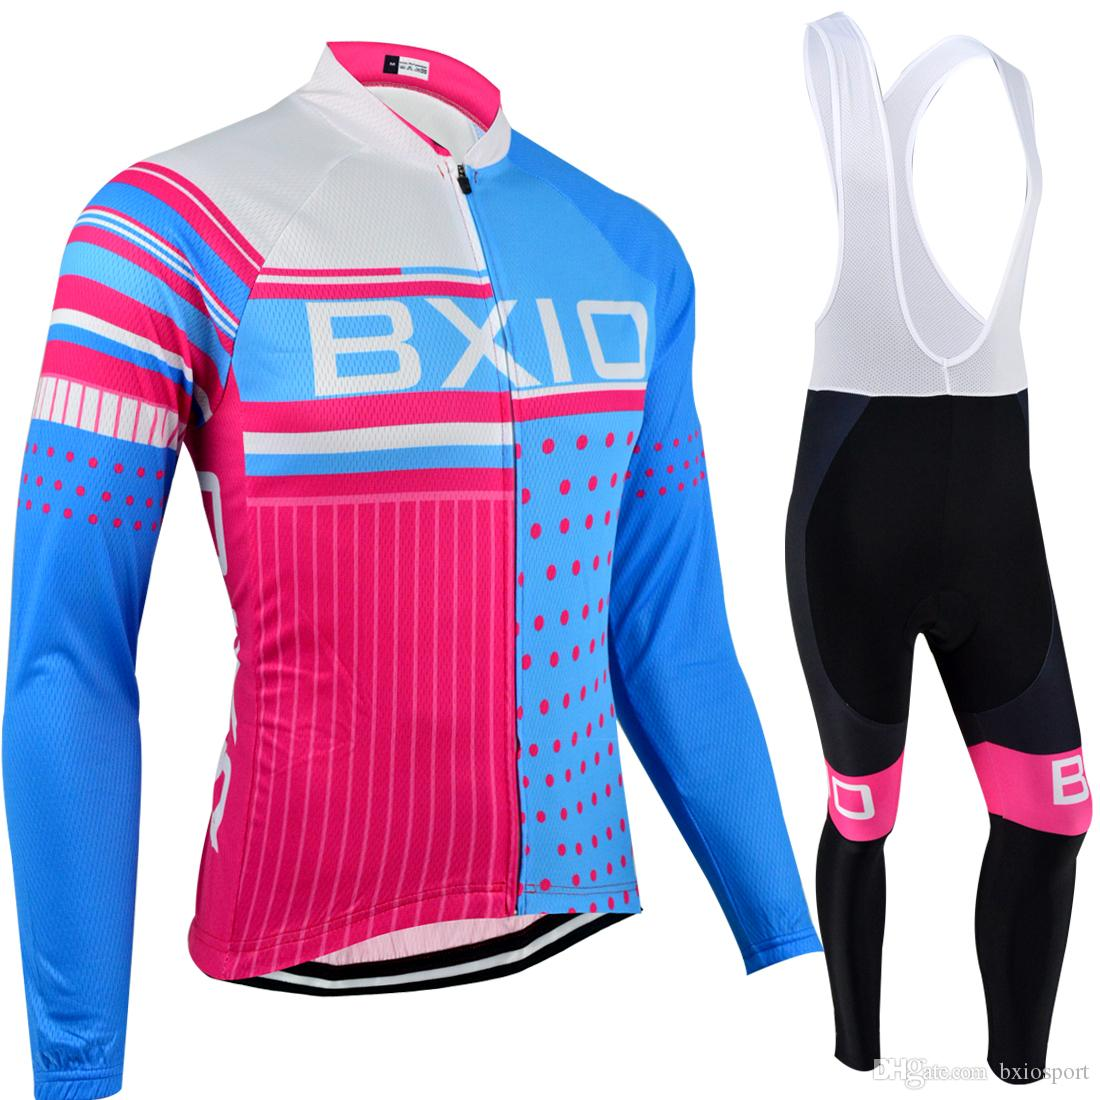 abe2cbdbc BXIO Brand Bike Clothing Long Sleeve Women Cycling Jersey Sets Blue Pink  Compressed Fall Suite Anti Pilling Bikes Clothes BX 013 Cycling T Shirt  Cycling ...